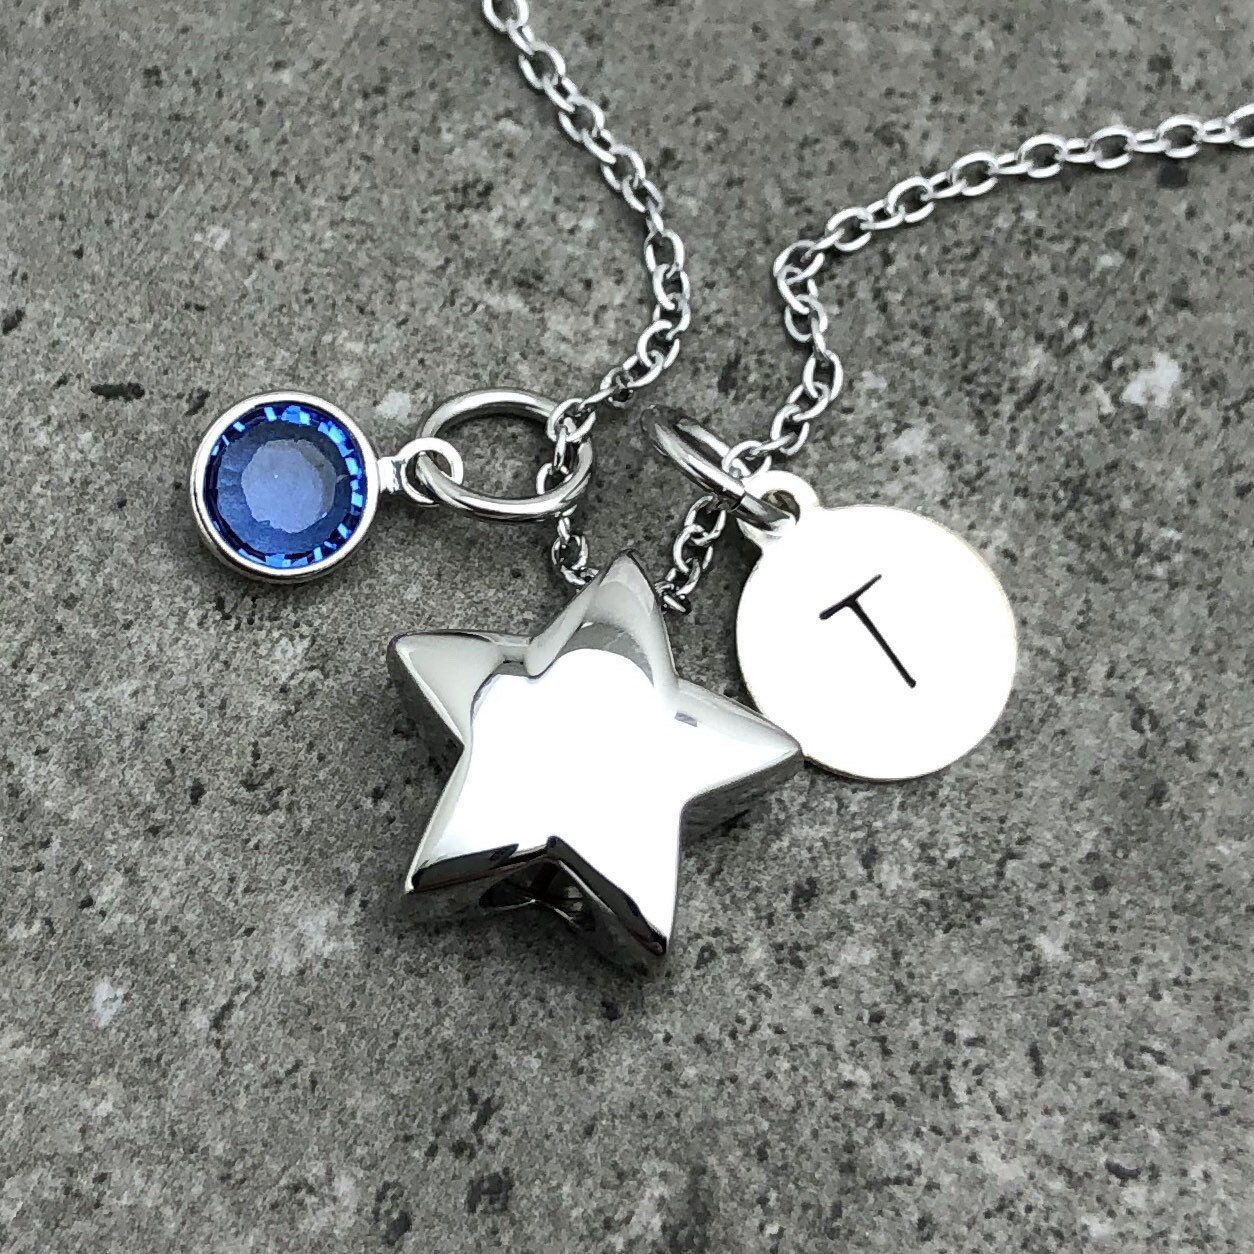 Cremation Necklace Engravable Urn Stainless Steel Dainty Star Cremation Urn Necklace Urn Necklace Memorial Jewellery